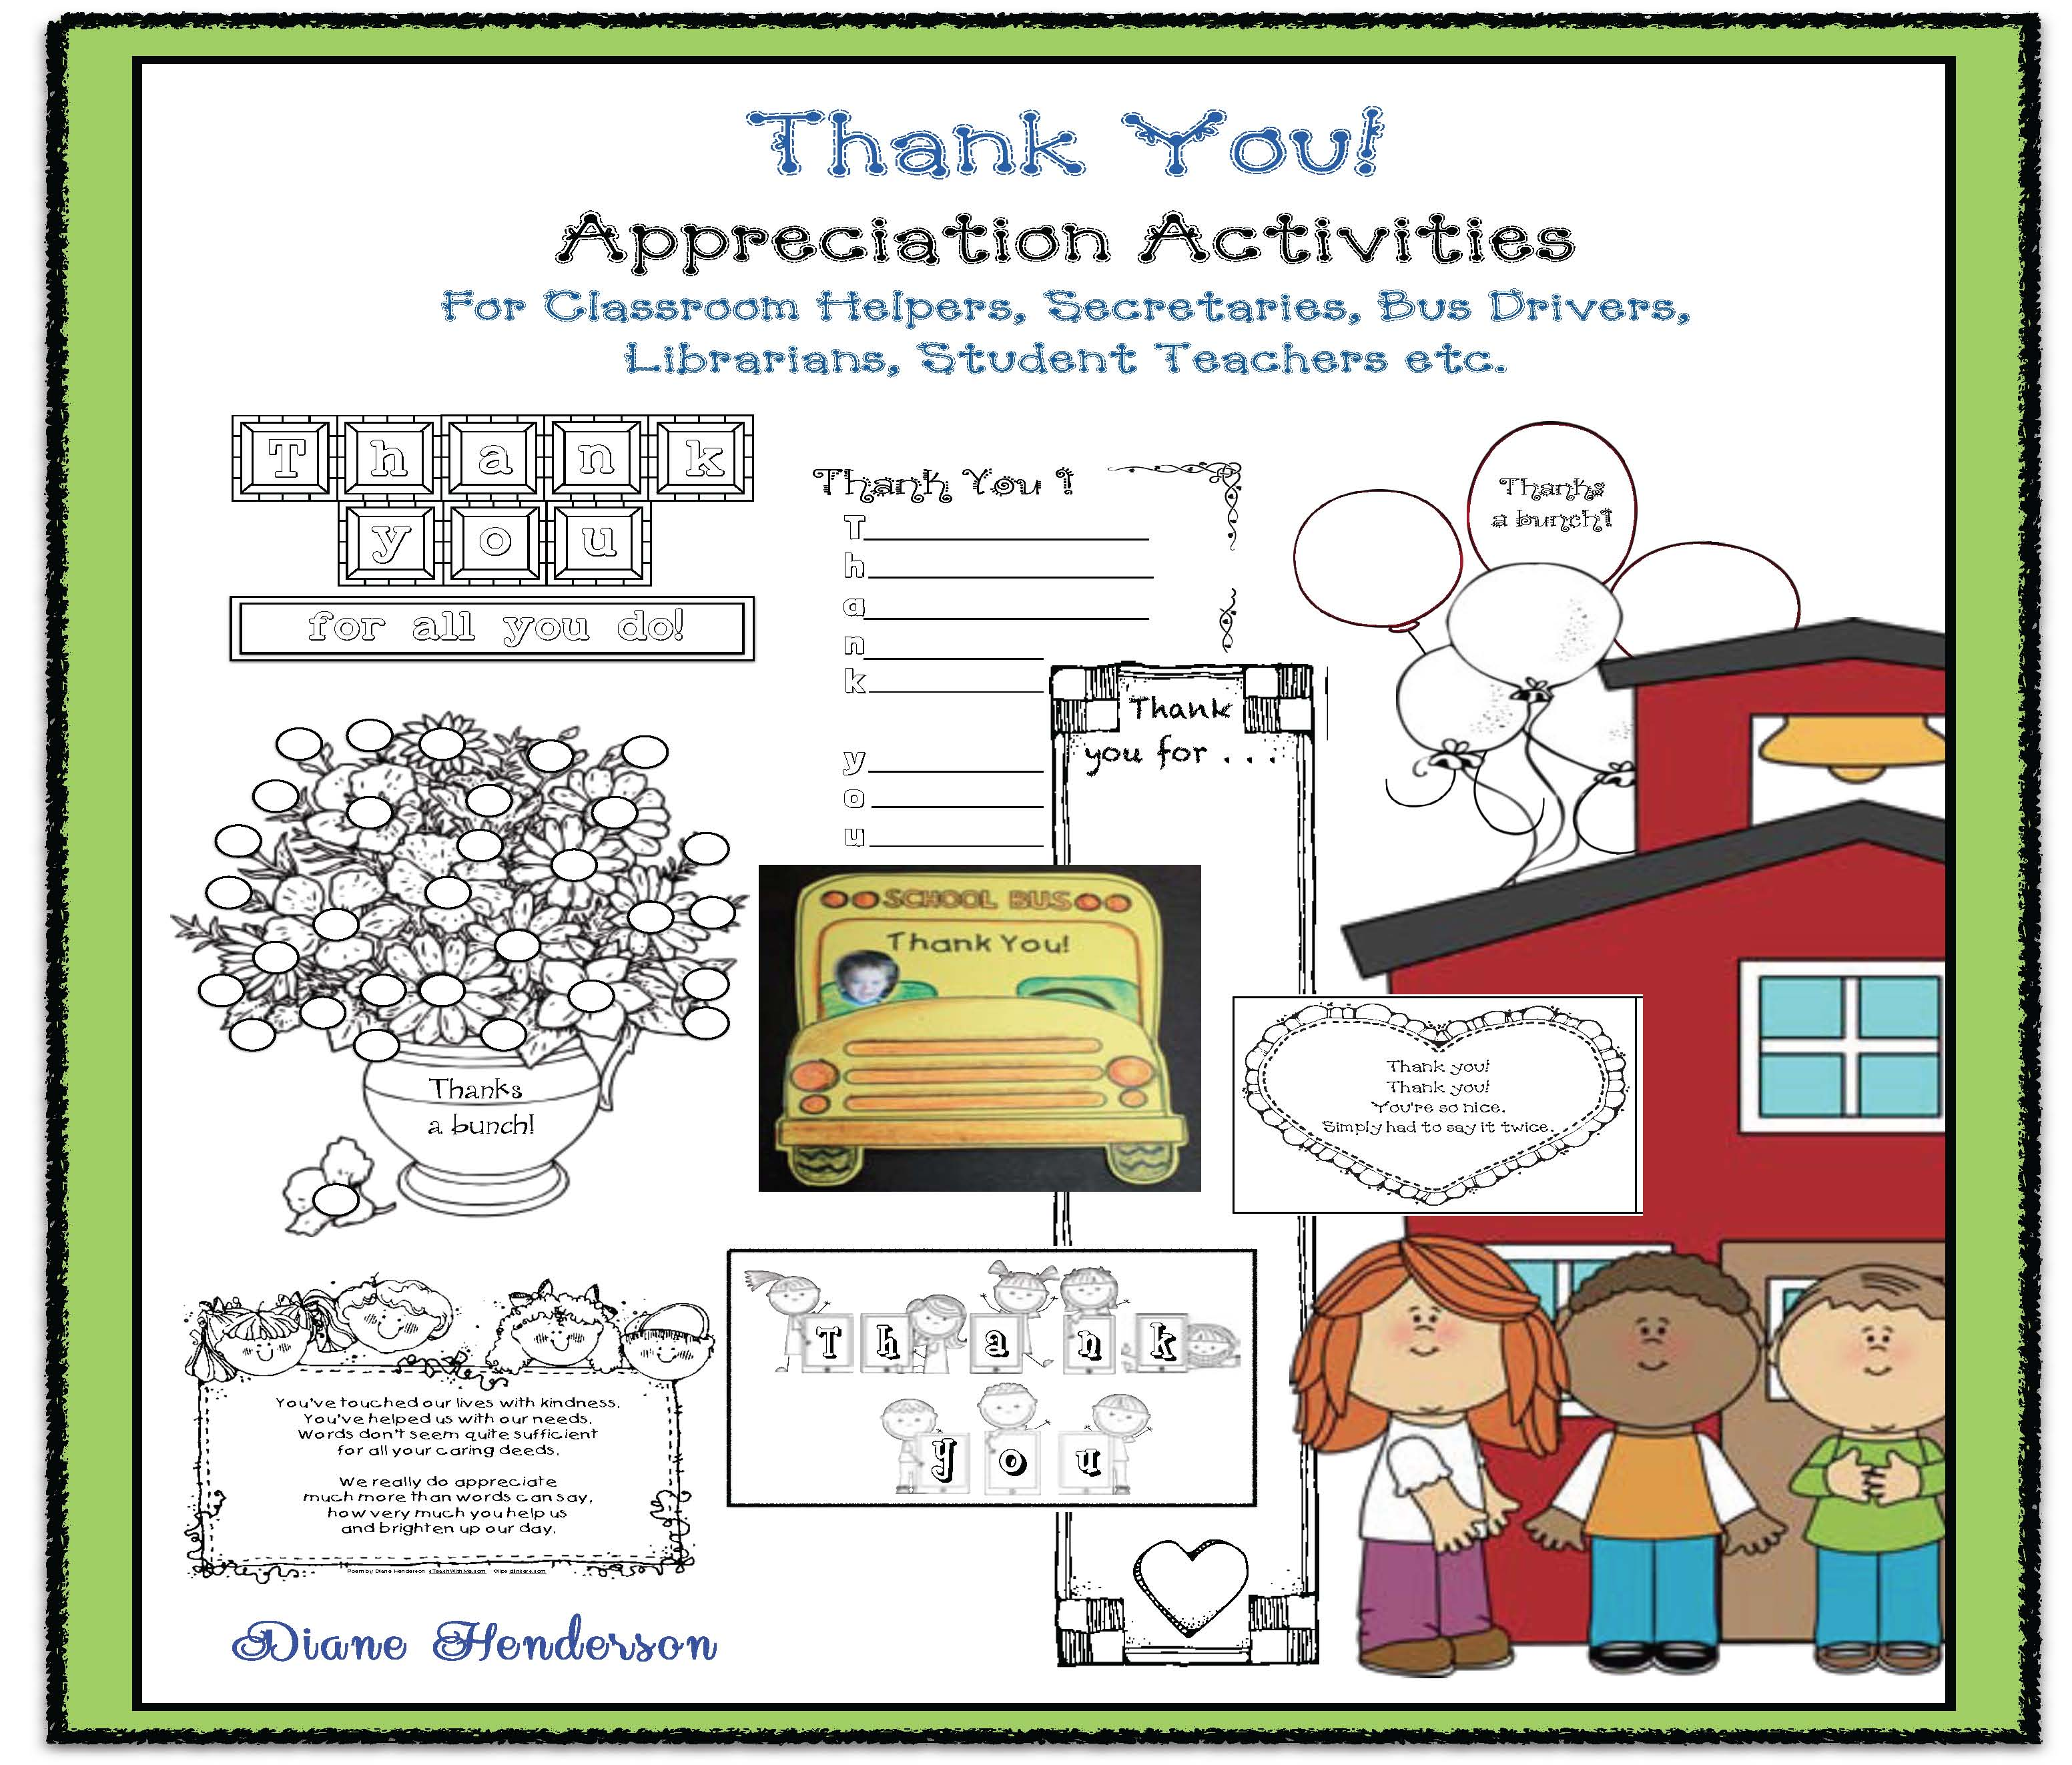 teacher appreciation ideas, teacher appreciation cards, end of the year activities, end of the year crafts, thank you cards, end of the year thank you cards, end of the year teacher appreciation, bus driver card,